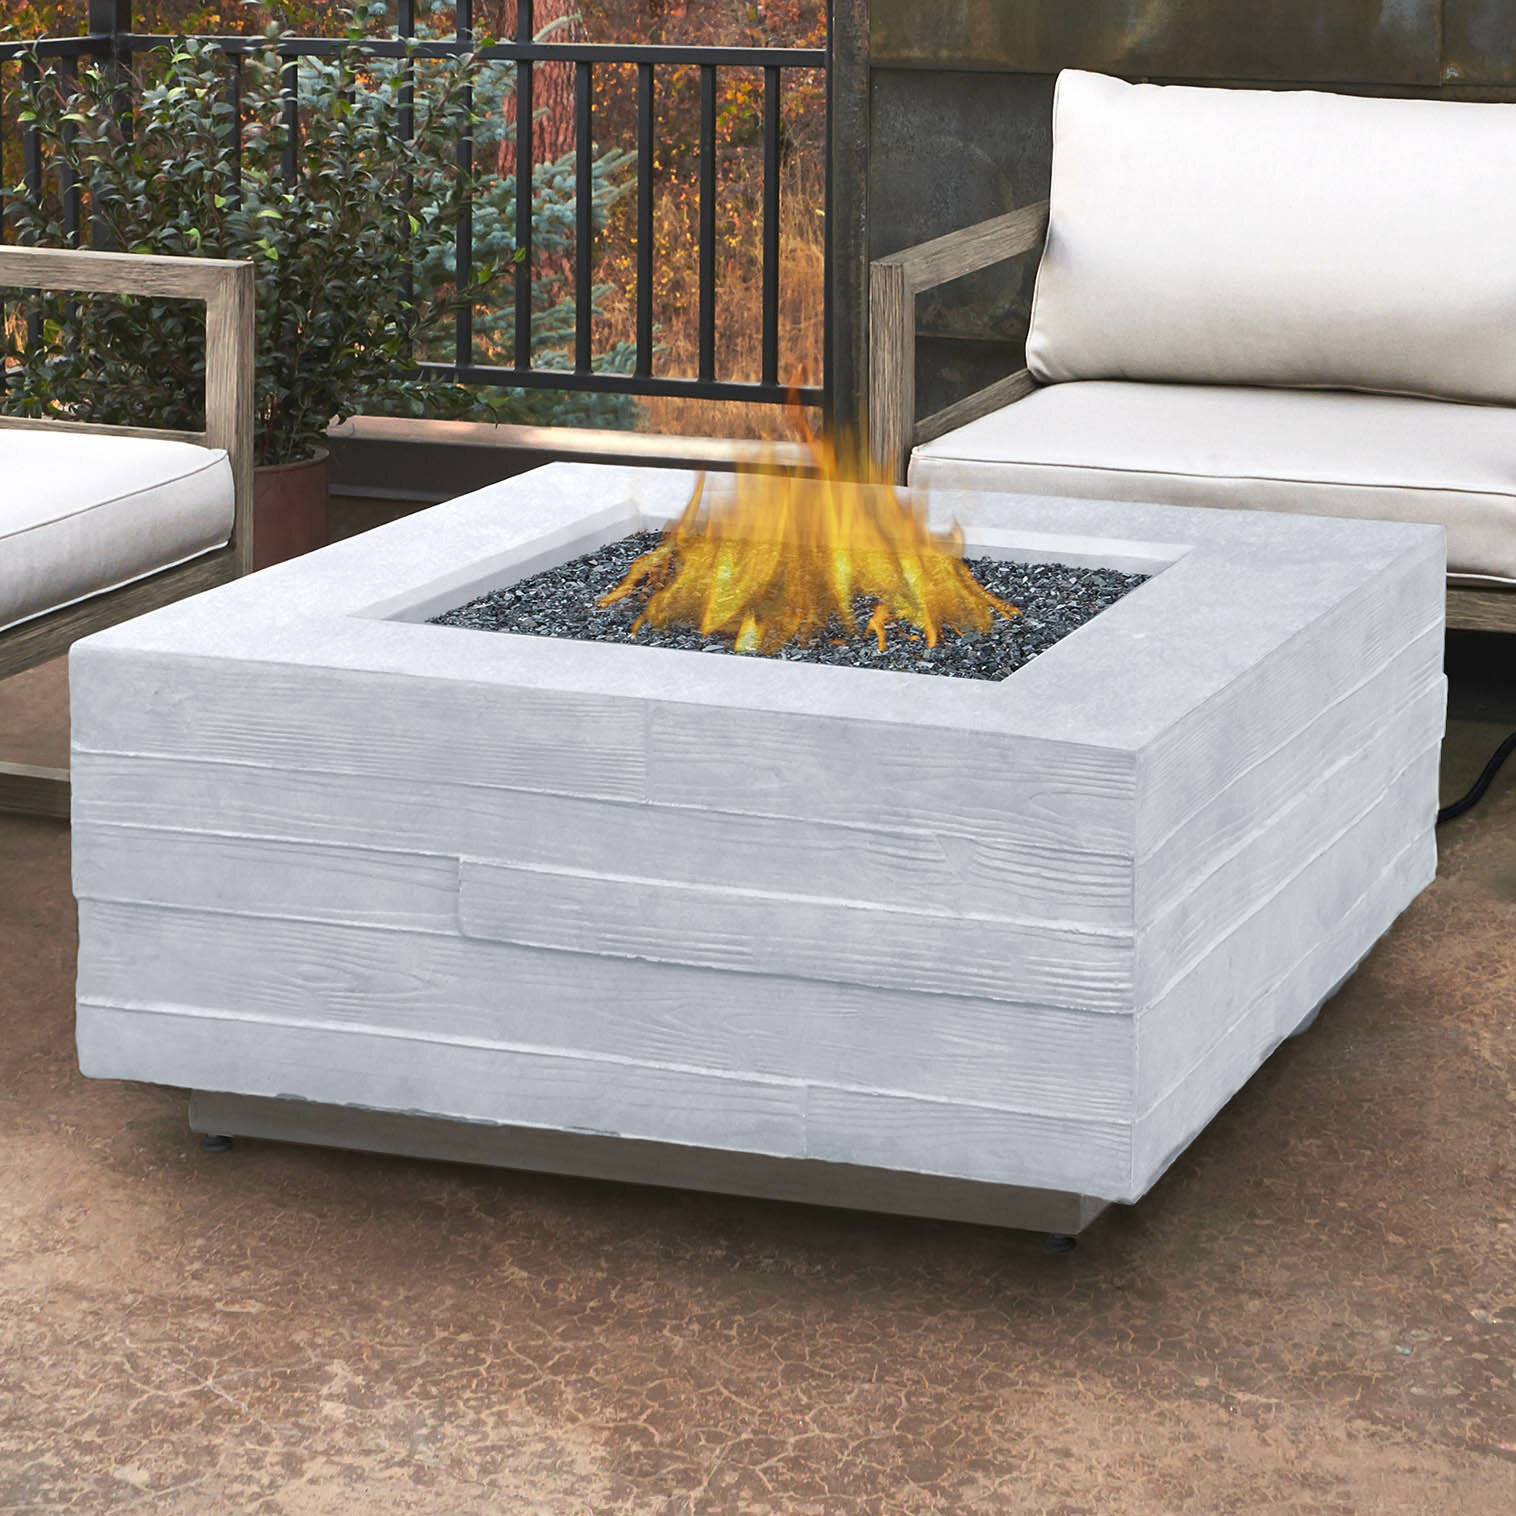 Real flame board form concrete propane fire pit table wayfair